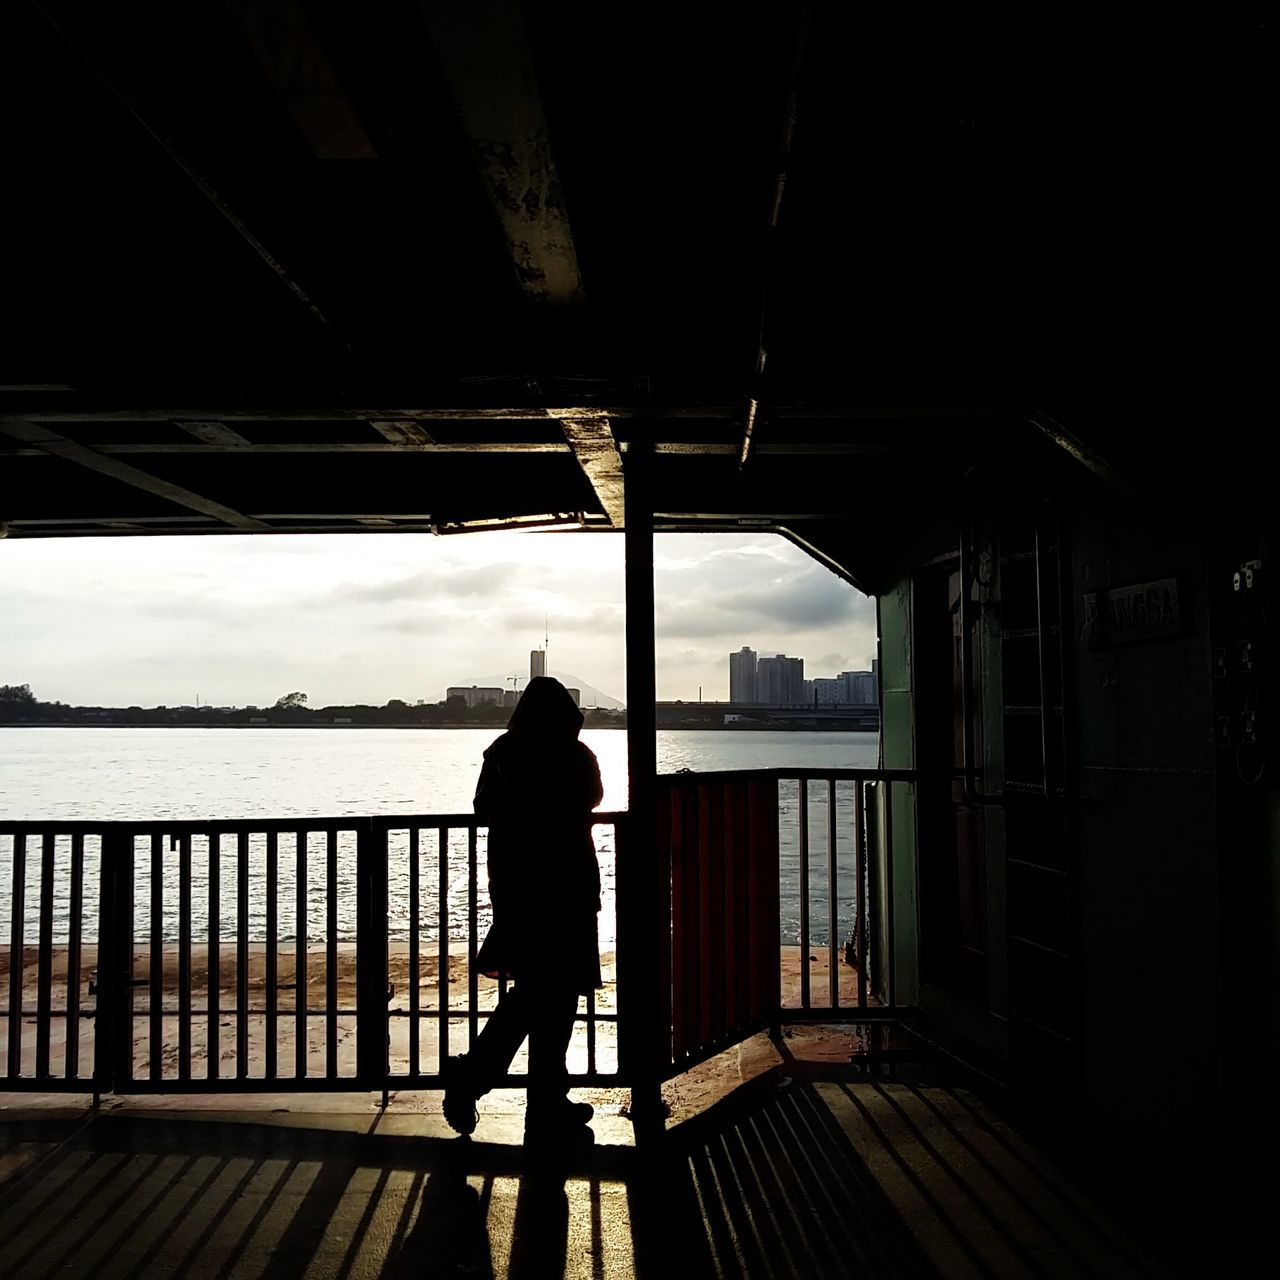 Full Length Of Silhouette Person Walking At Corridor By River